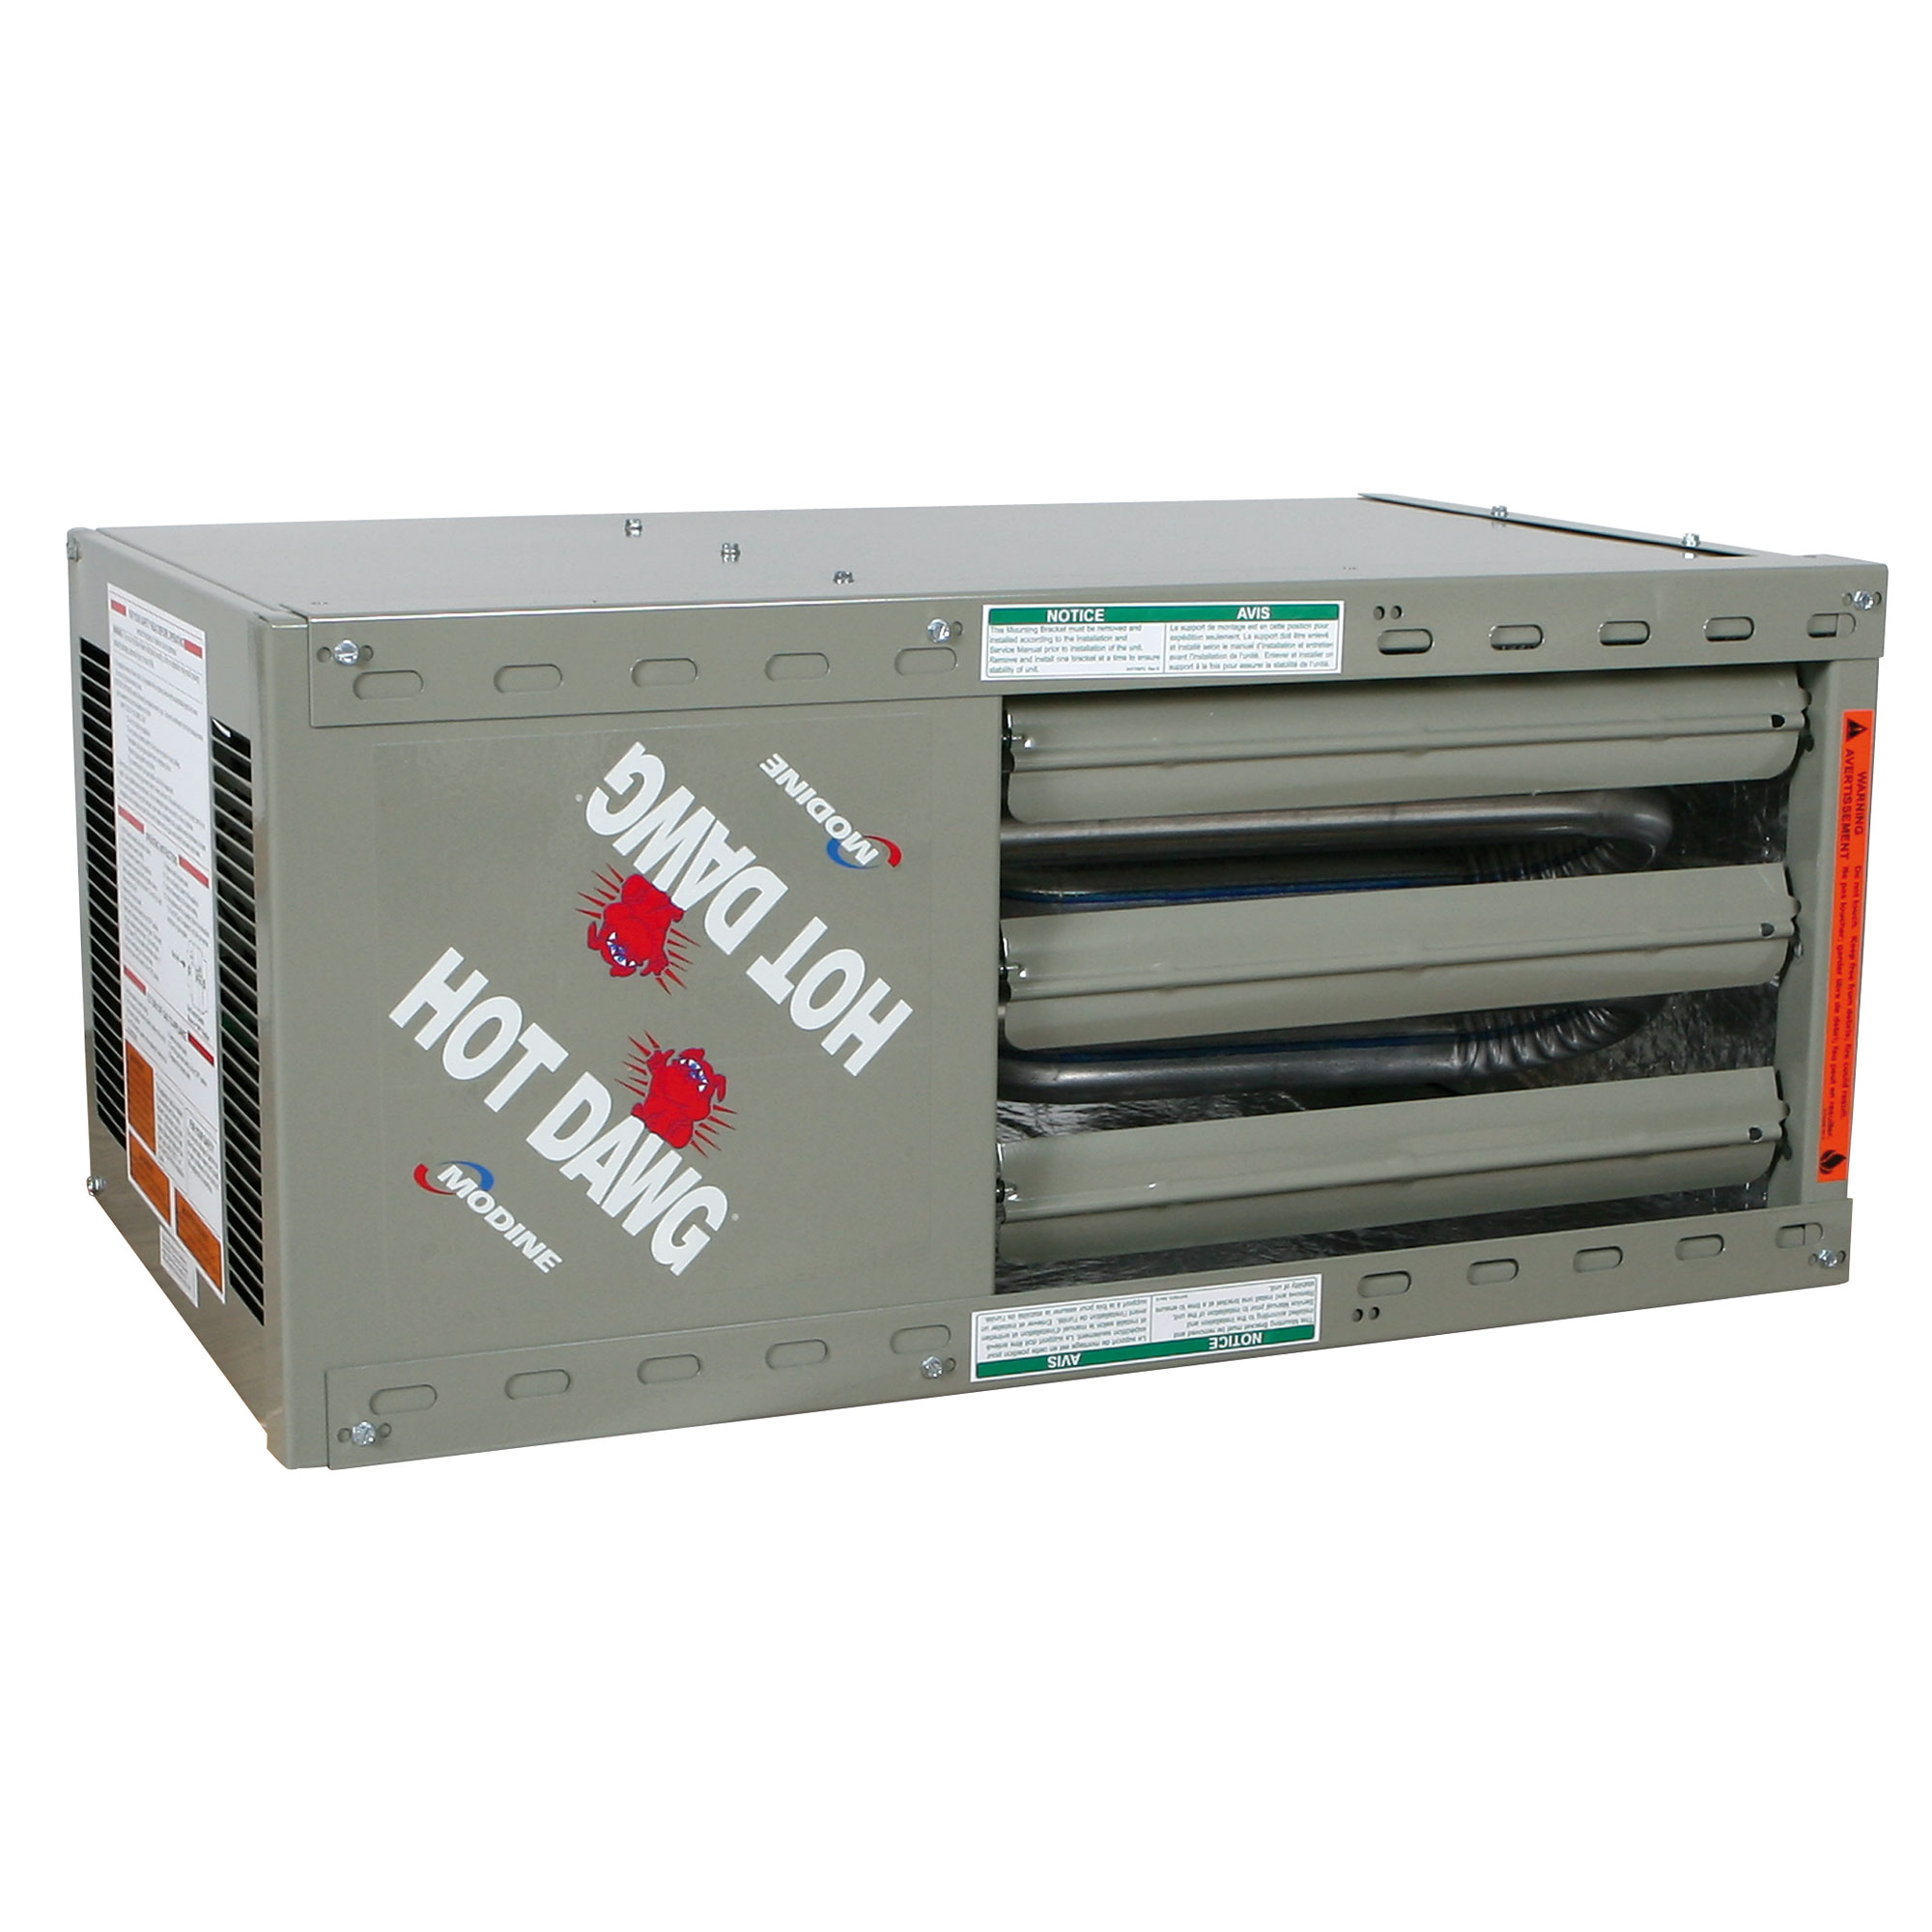 Modine hot dawg heater model hd qc supply sciox Image collections